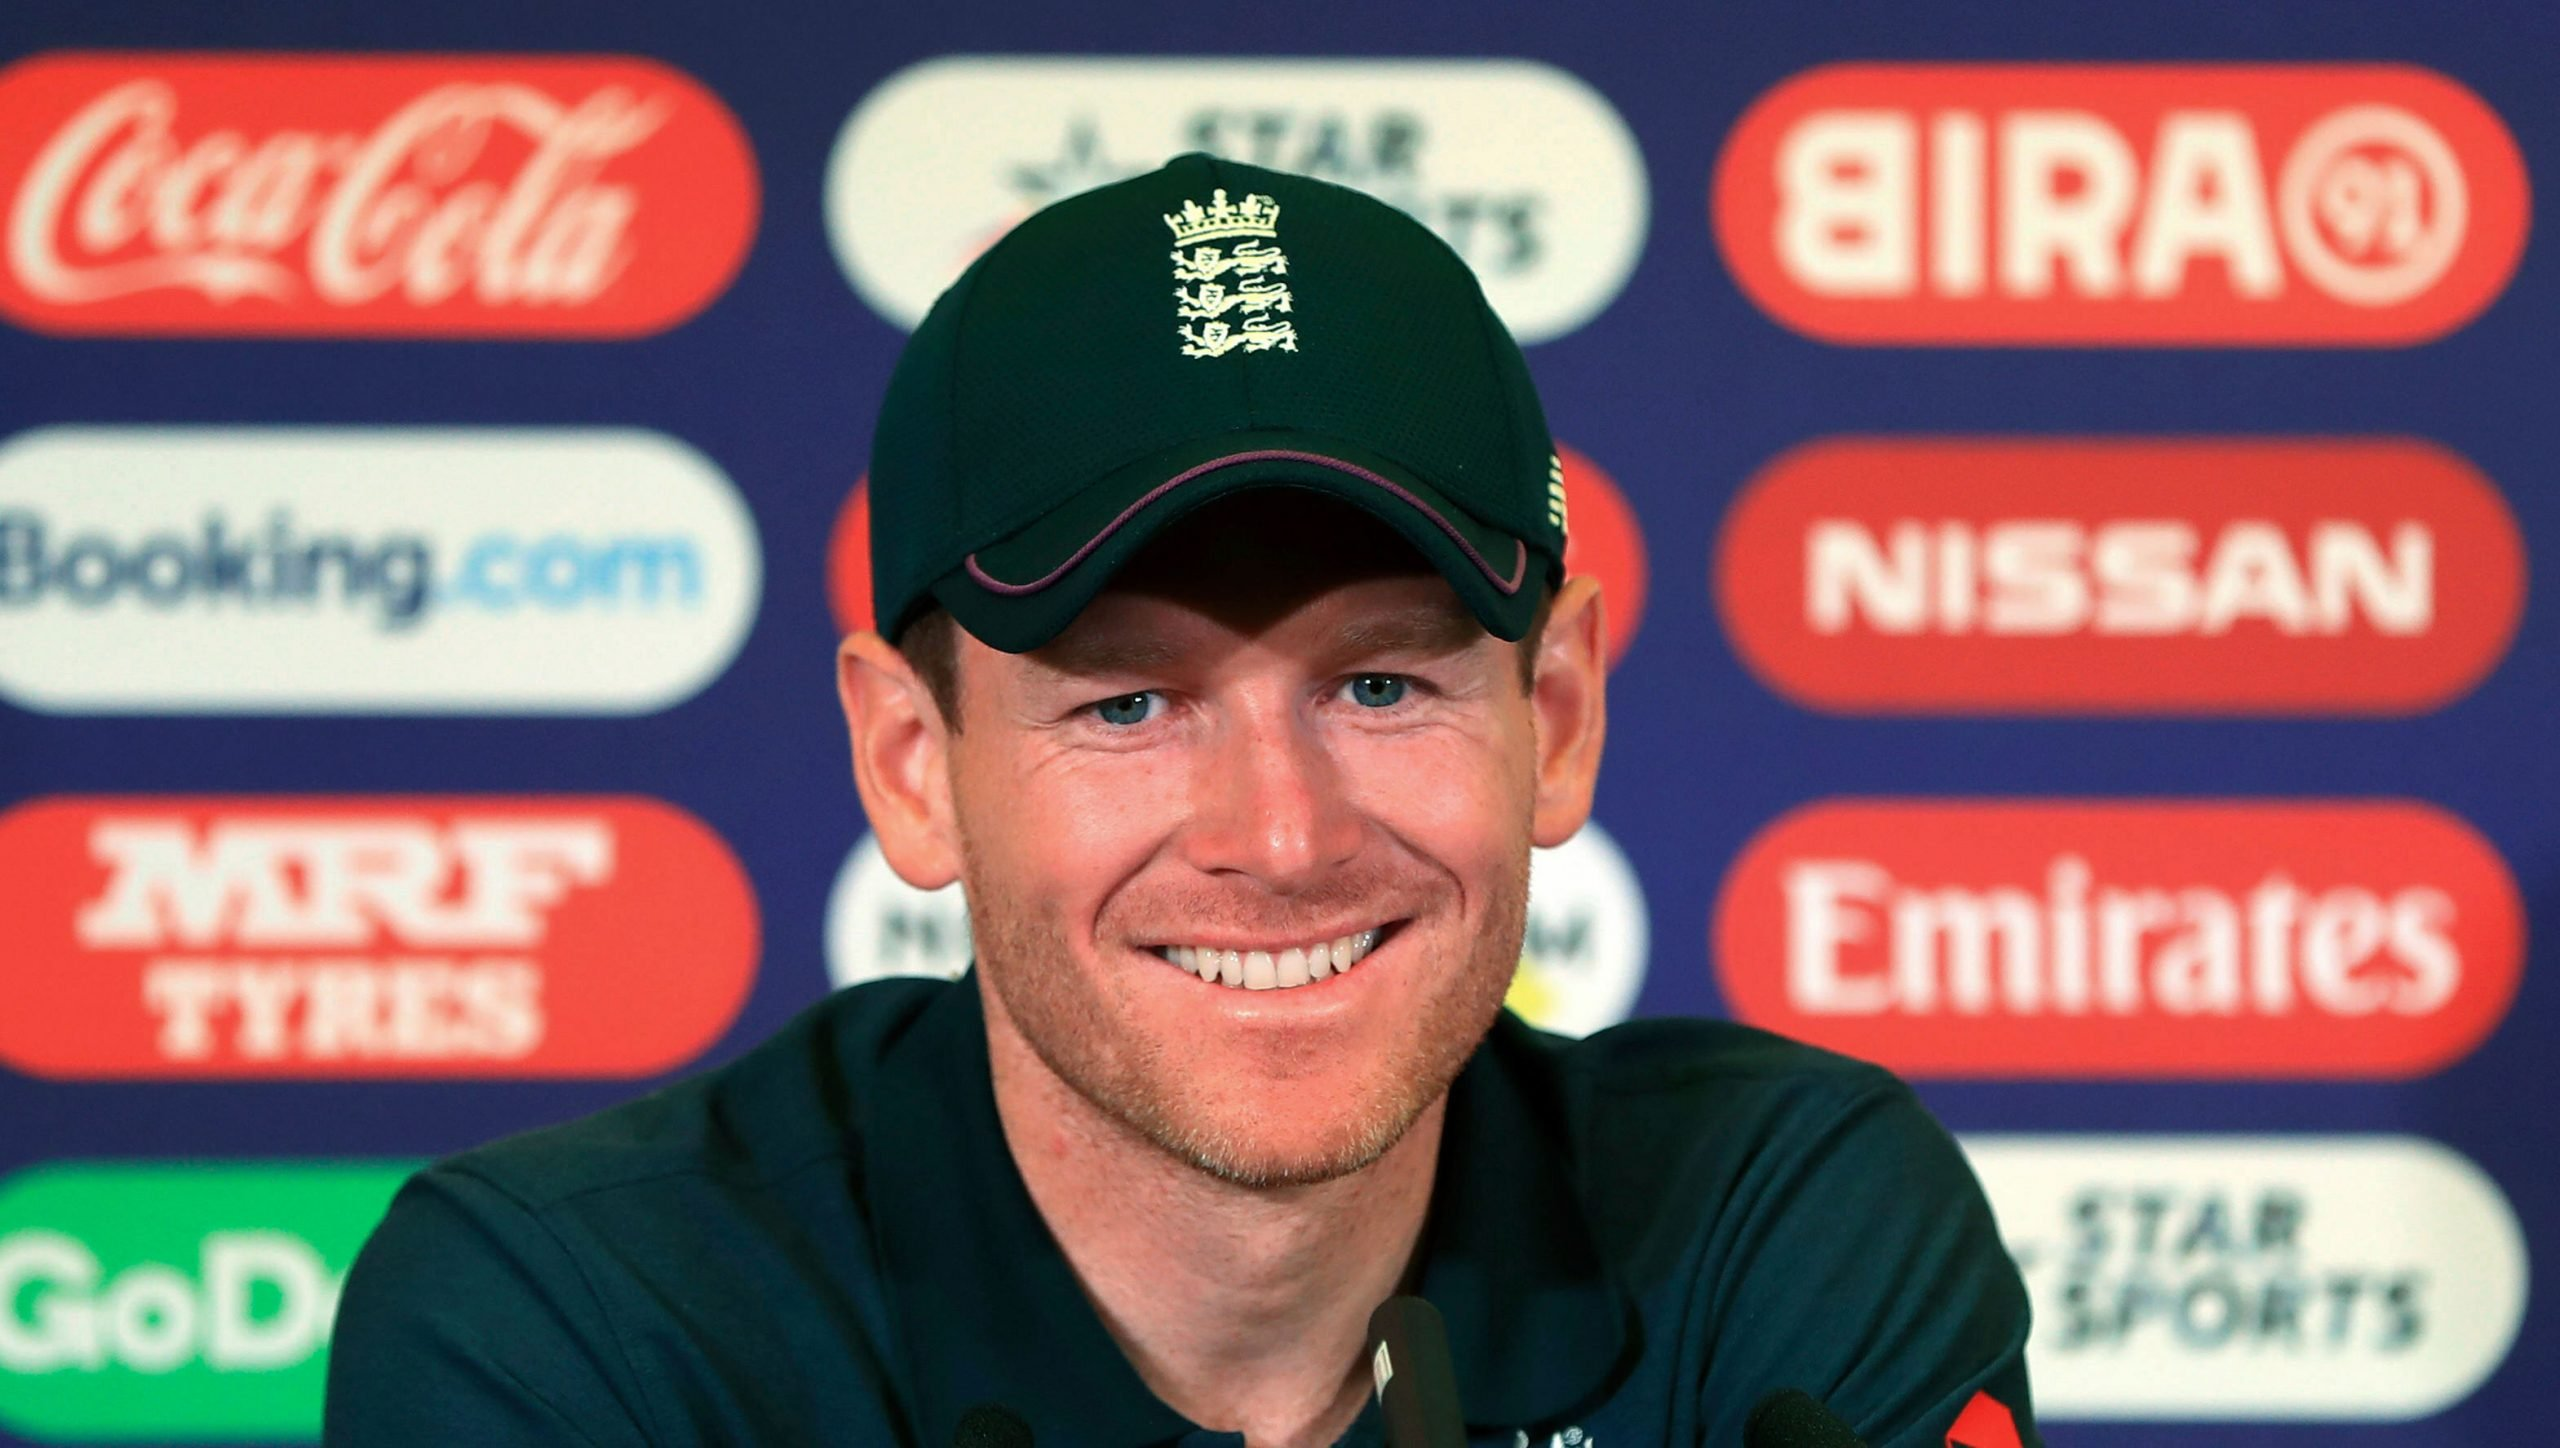 Many Indian cricketers would love to play in 'The Hundred', claims Morgan